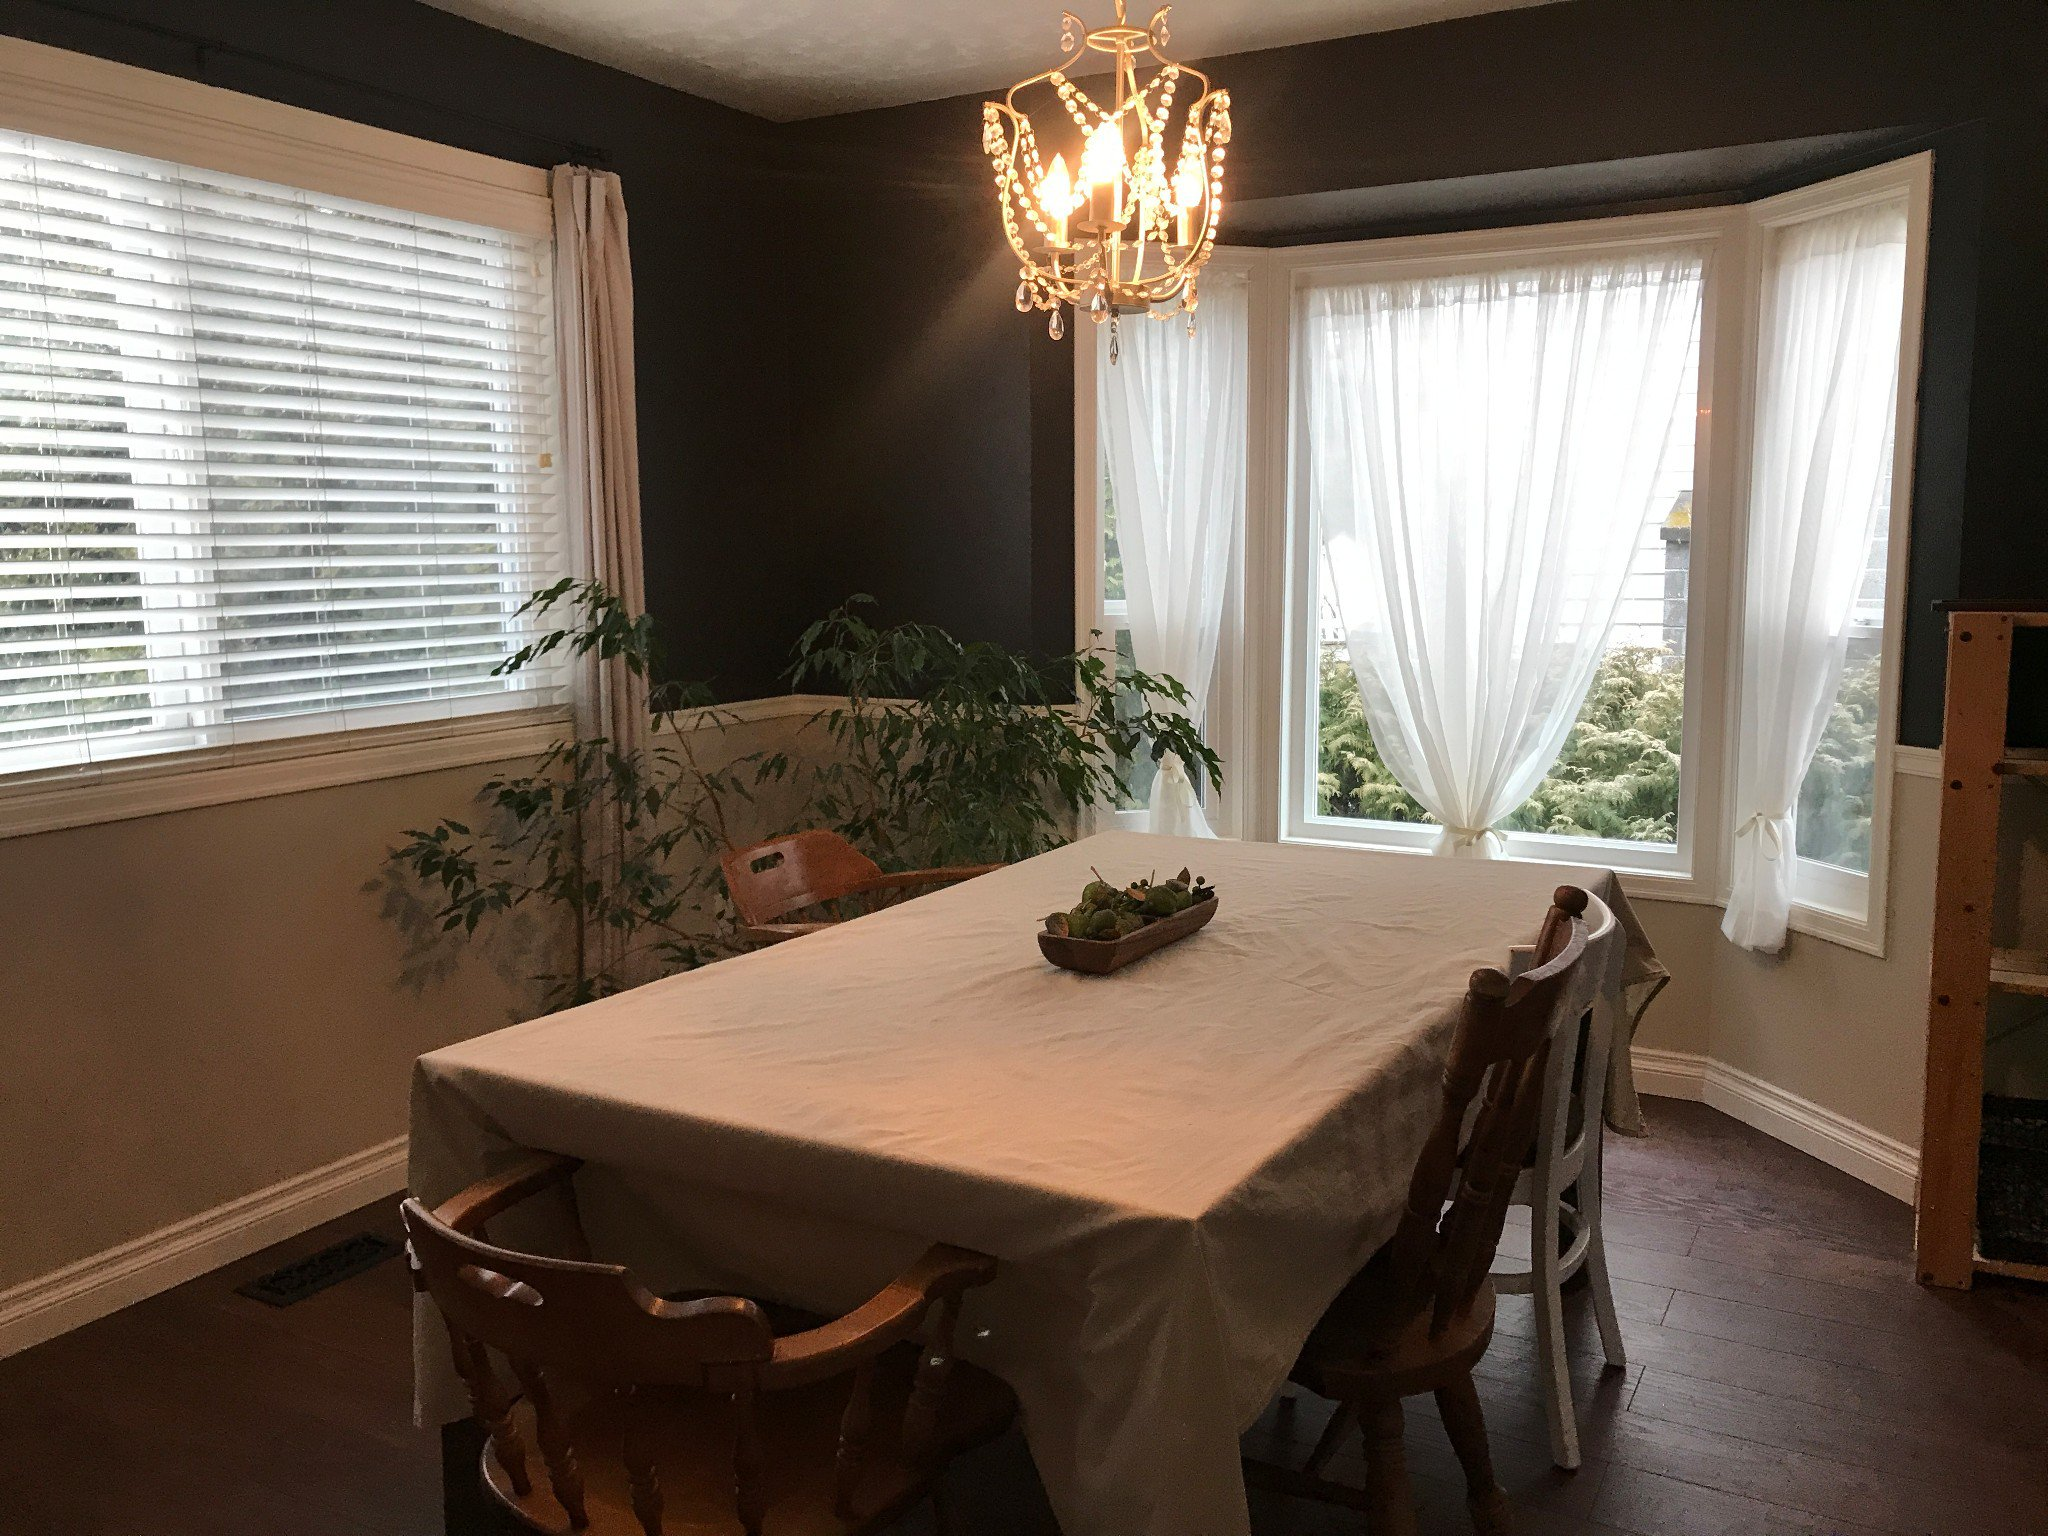 Photo 4: Photos: 32905 Alta Ave. in Abbotsford: Central Abbotsford House for rent